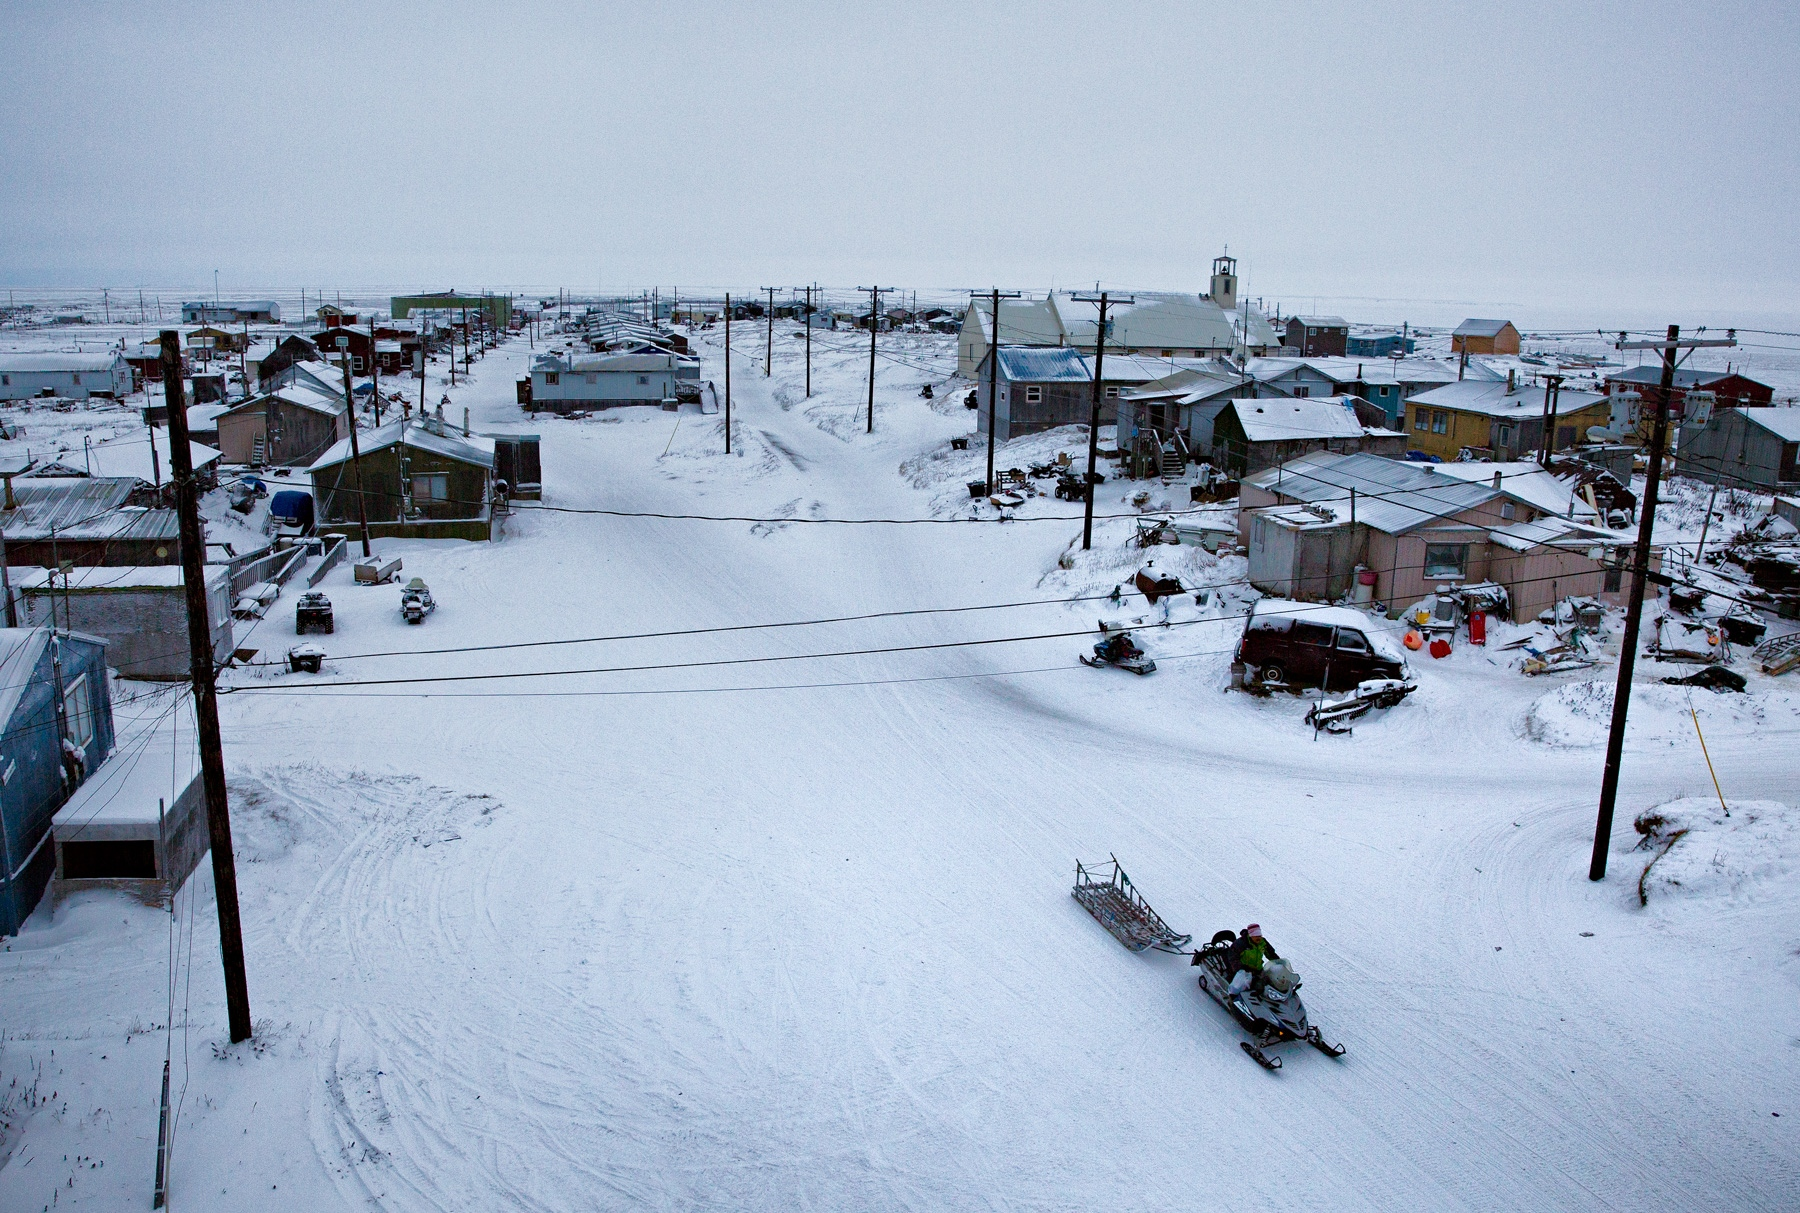 Shishmaref, Alaska is a small city of 600 Inupiaq Eskimos who have lived on the Sarichef Island in the Chukchi Sea, just north of the Bering Strait and about five miles away from the mainland Alaska.